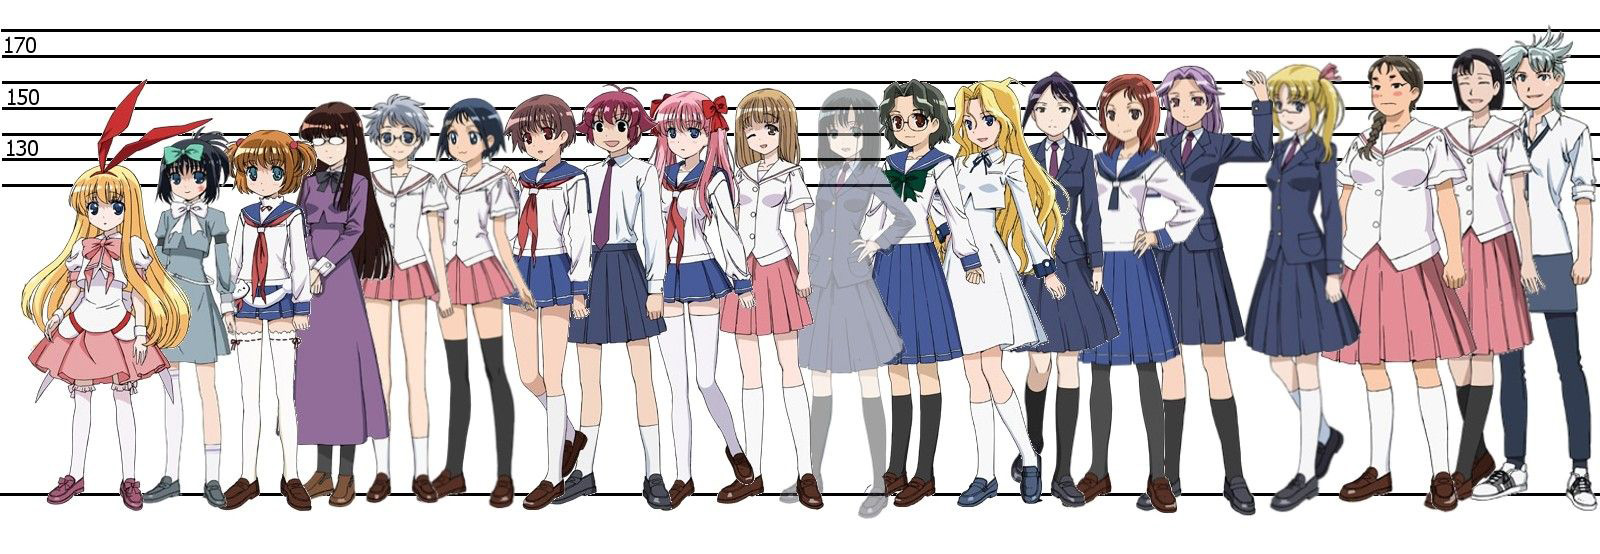 Moe female anime characters height comparison chart otaku tale for female characters from older anime series nvjuhfo Image collections